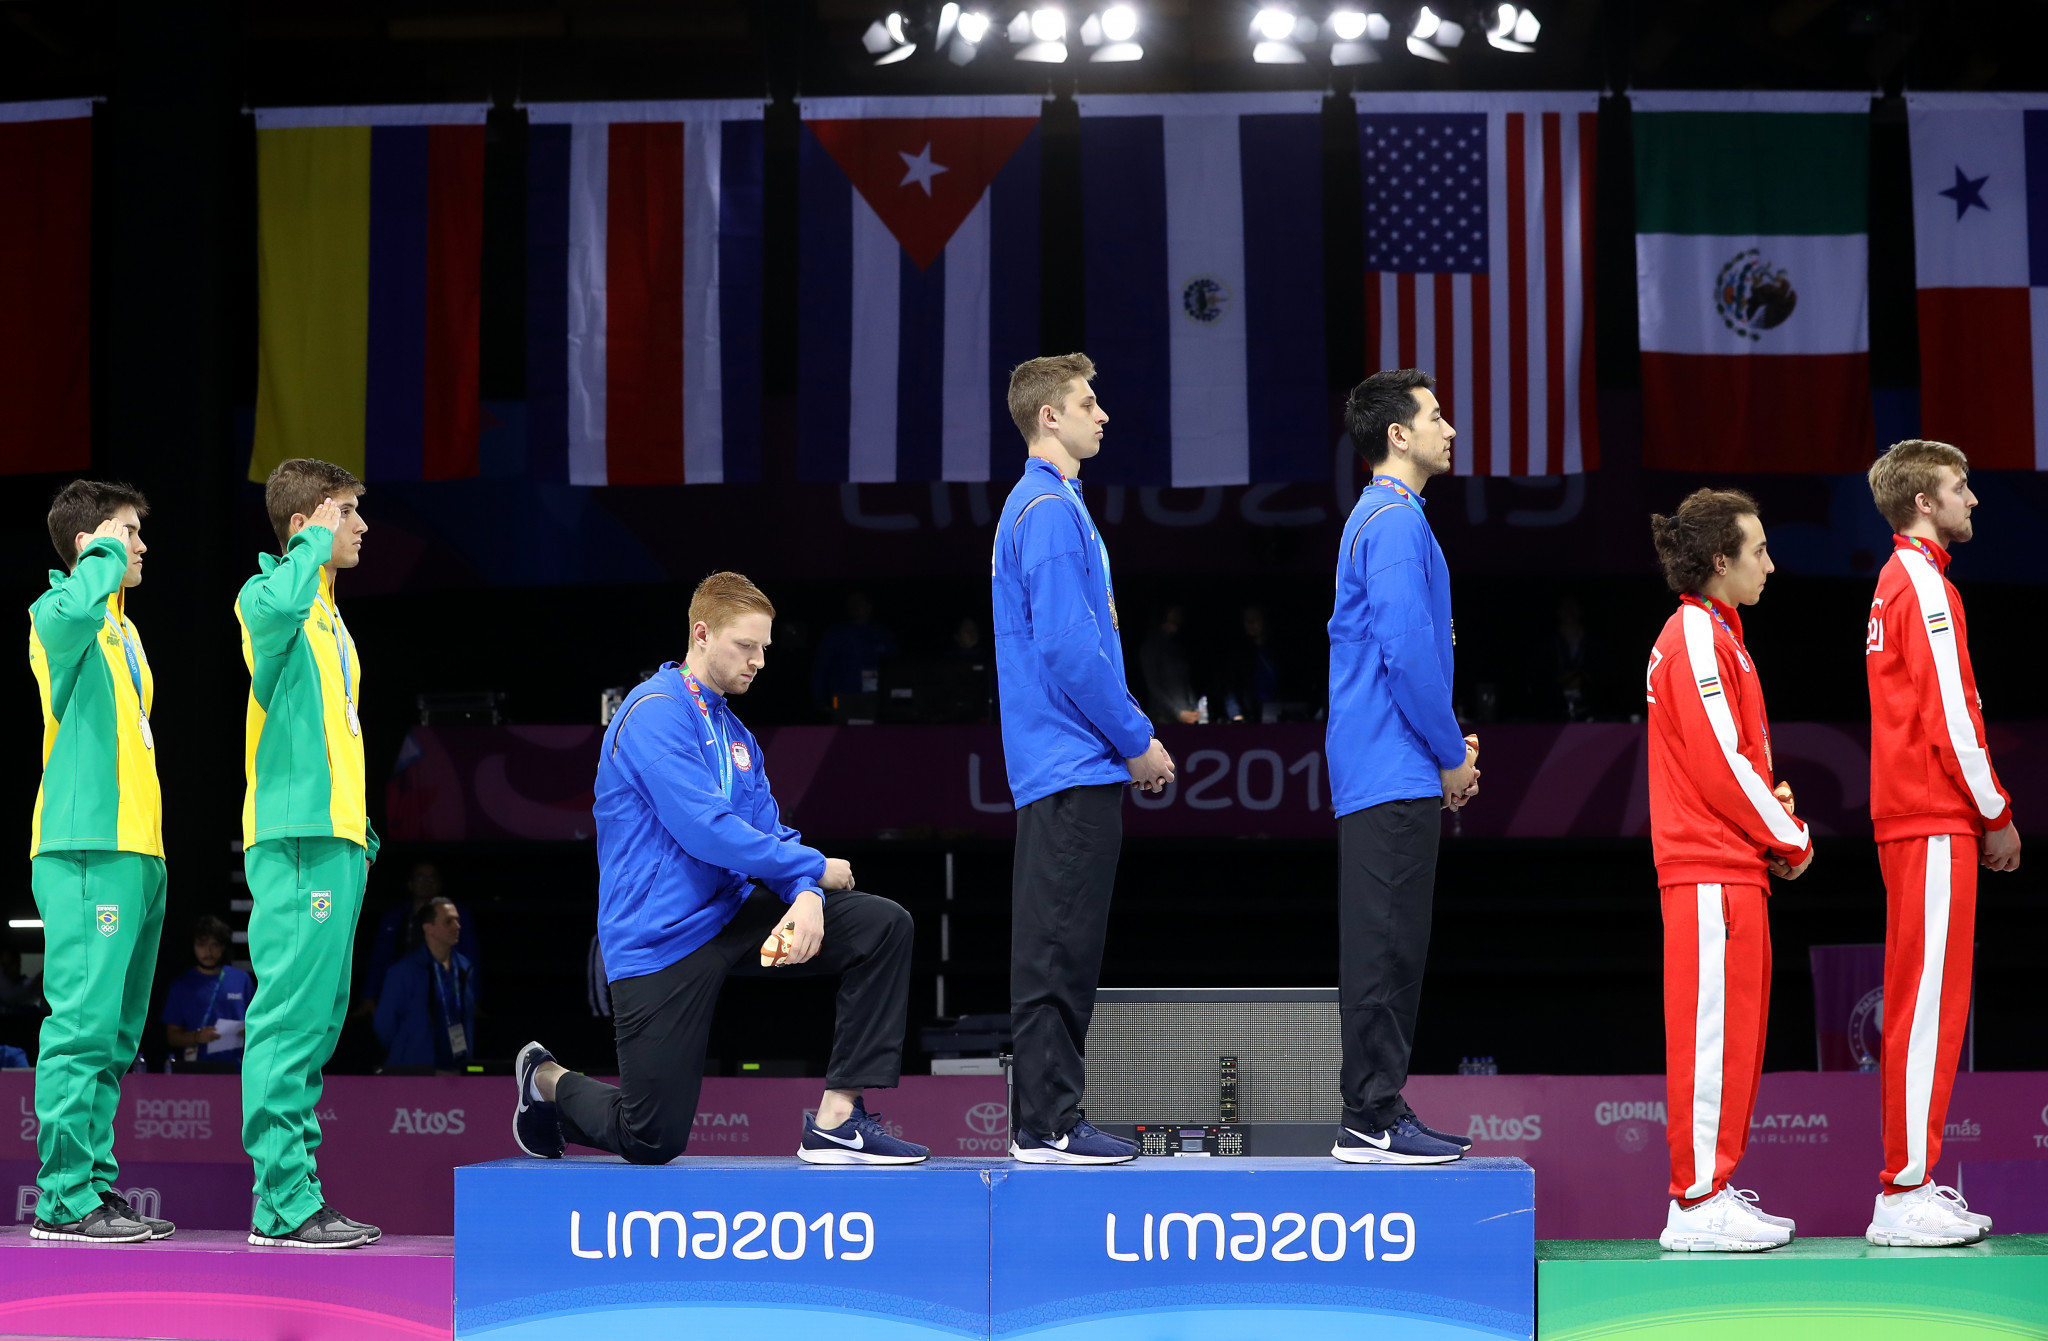 American fencer Race Imboden was reprimanded after taking a knee at the 2019 Pan American Games in Lima ©Getty Images